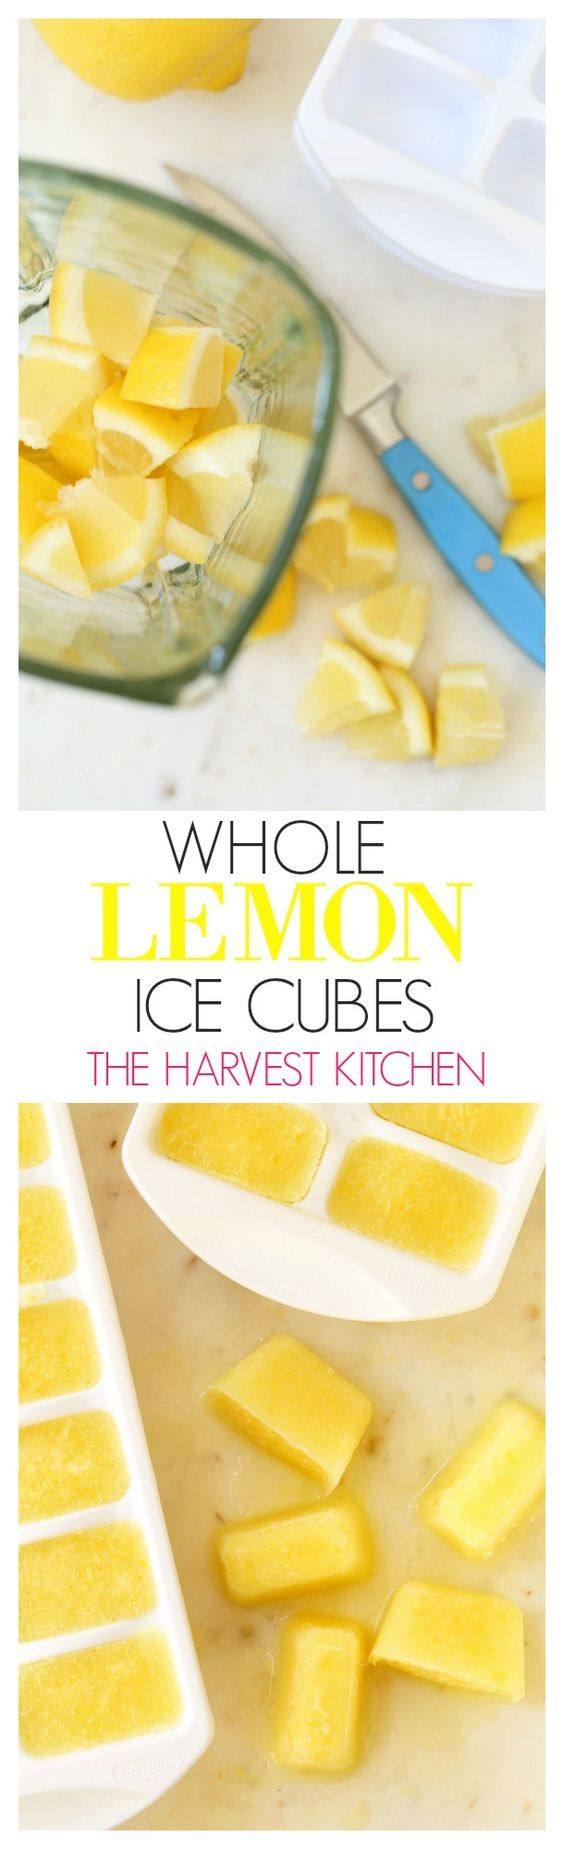 These Immune Boosting Whole Lemon Ice Cubes pack a big nutritional punch, and they add great flavor when added to a tall glass of water, juice blends, smoothies, soups and sauces. @theharvestkitchen.com